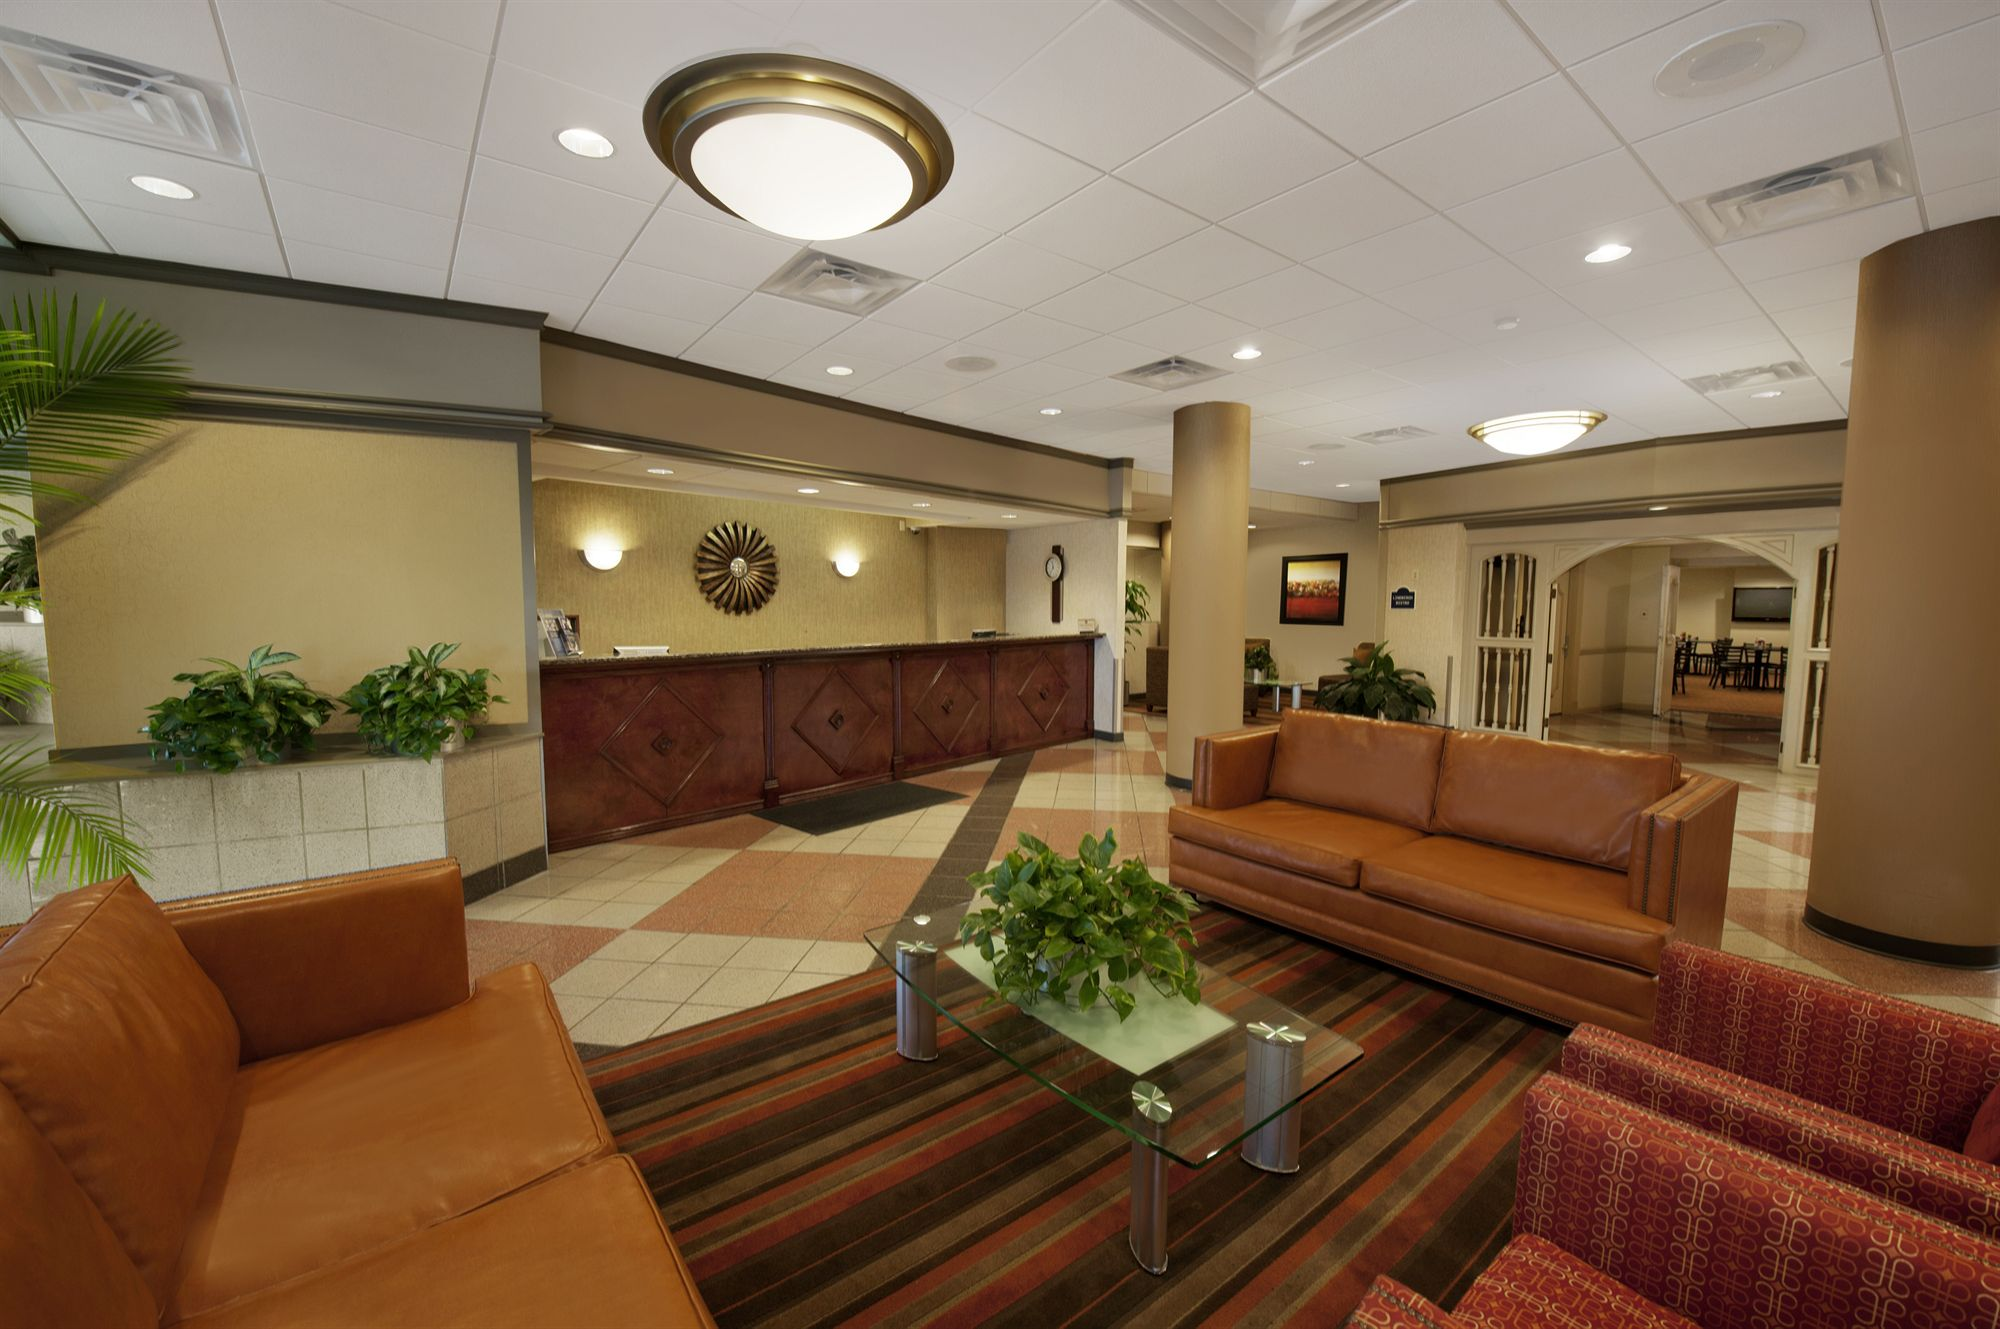 Airport Plaza Inn Discount Coupon For Airport Plaza Inn Conference Center In